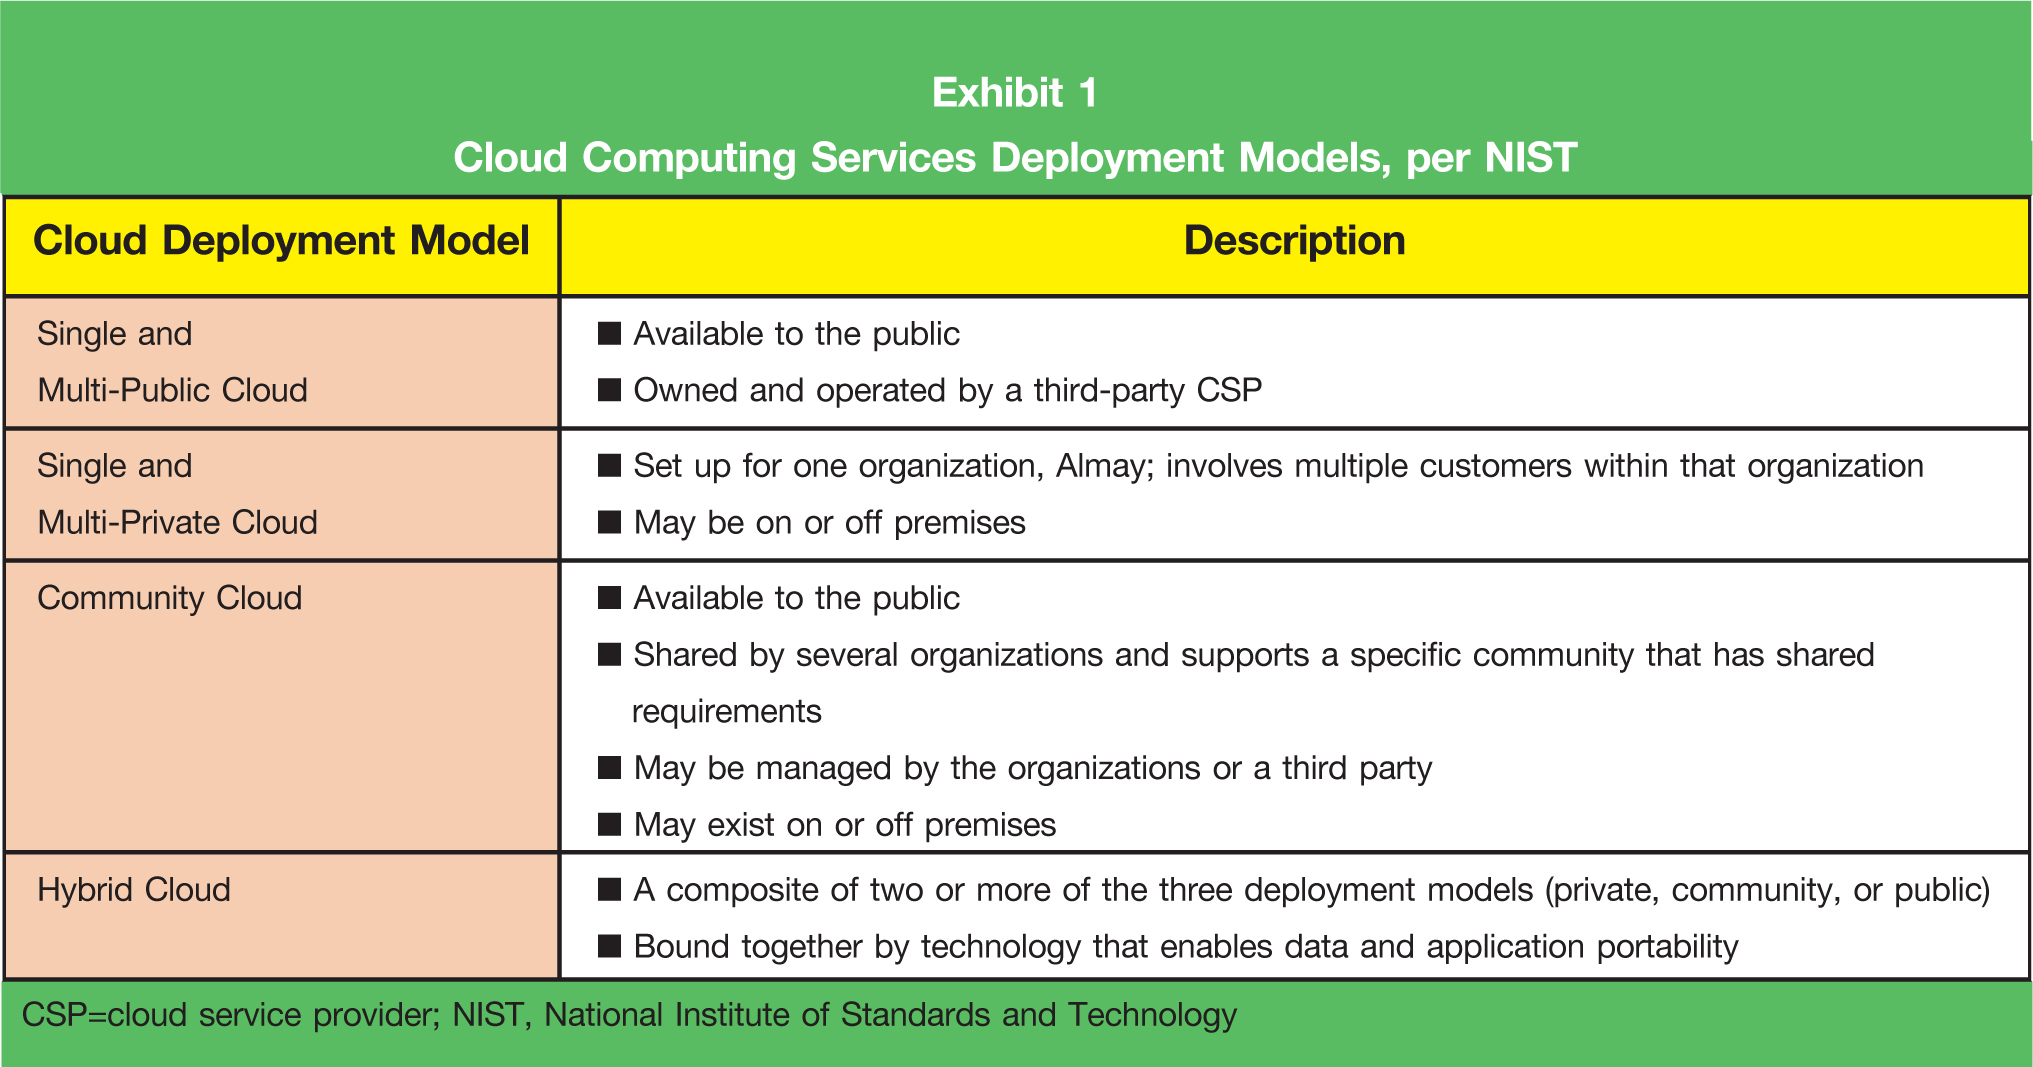 Cloud Deployment Model; Description Single and Multi-Public Cloud • Available to the public • Owned and operated by a third-party CSP Single and Multi-Private Cloud; • Set up for one organization, Almay; involves multiple customers within that organization • May be on or off premises Community Cloud; • Available to the public • Shared by several organizations and supports a specific community that has shared requirements • May be managed by the organizations or a third party • May exist on or off premises Hybrid Cloud; • A composite of two or more of the three deployment models (private, community, or public) • Bound together by technology that enables data and application portability CSP =cloud service provider; NIST, National Institute of Standards and Technology